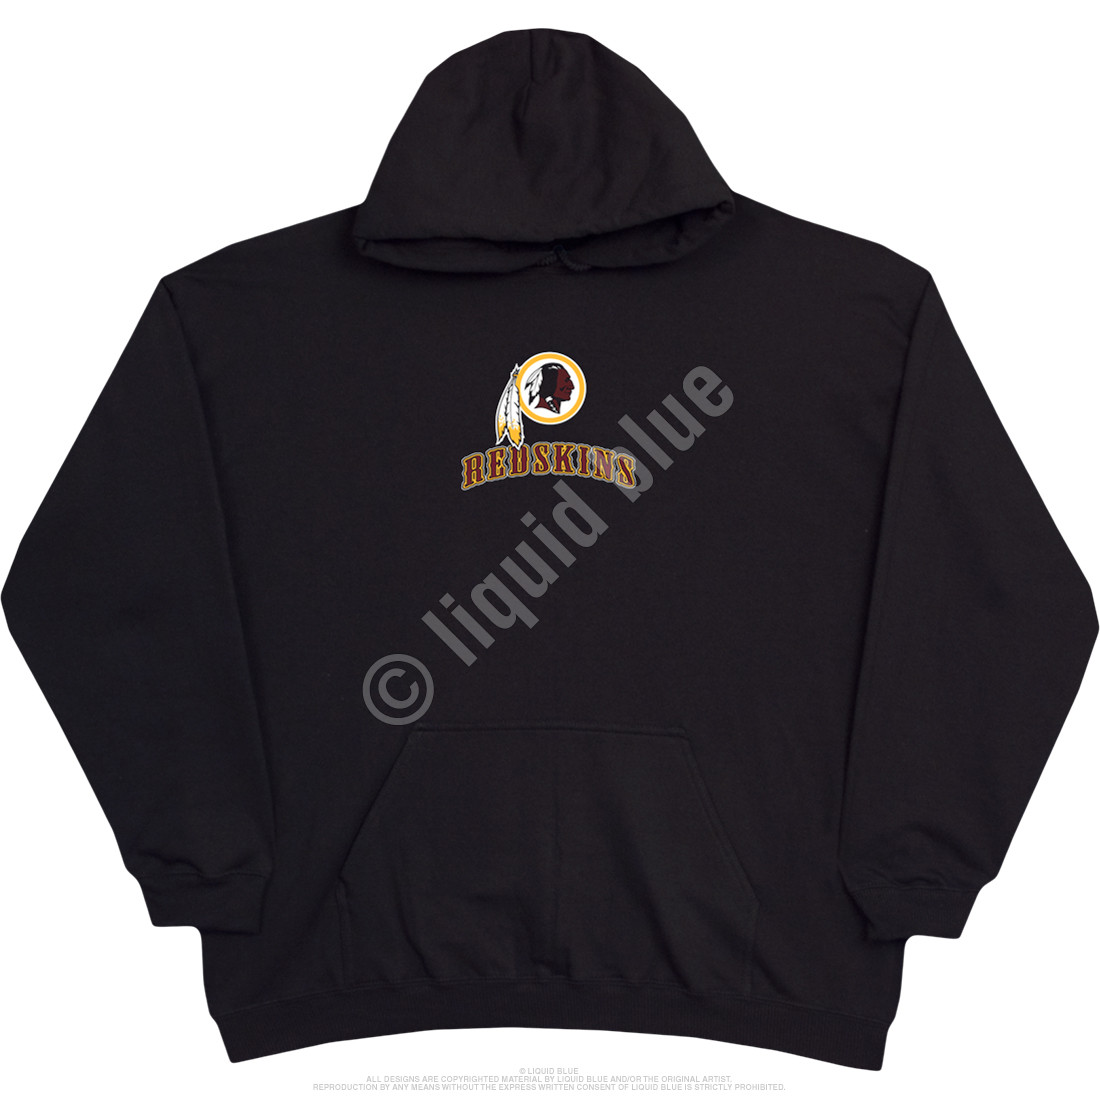 Washington Redskins Running Back Black Hoodie